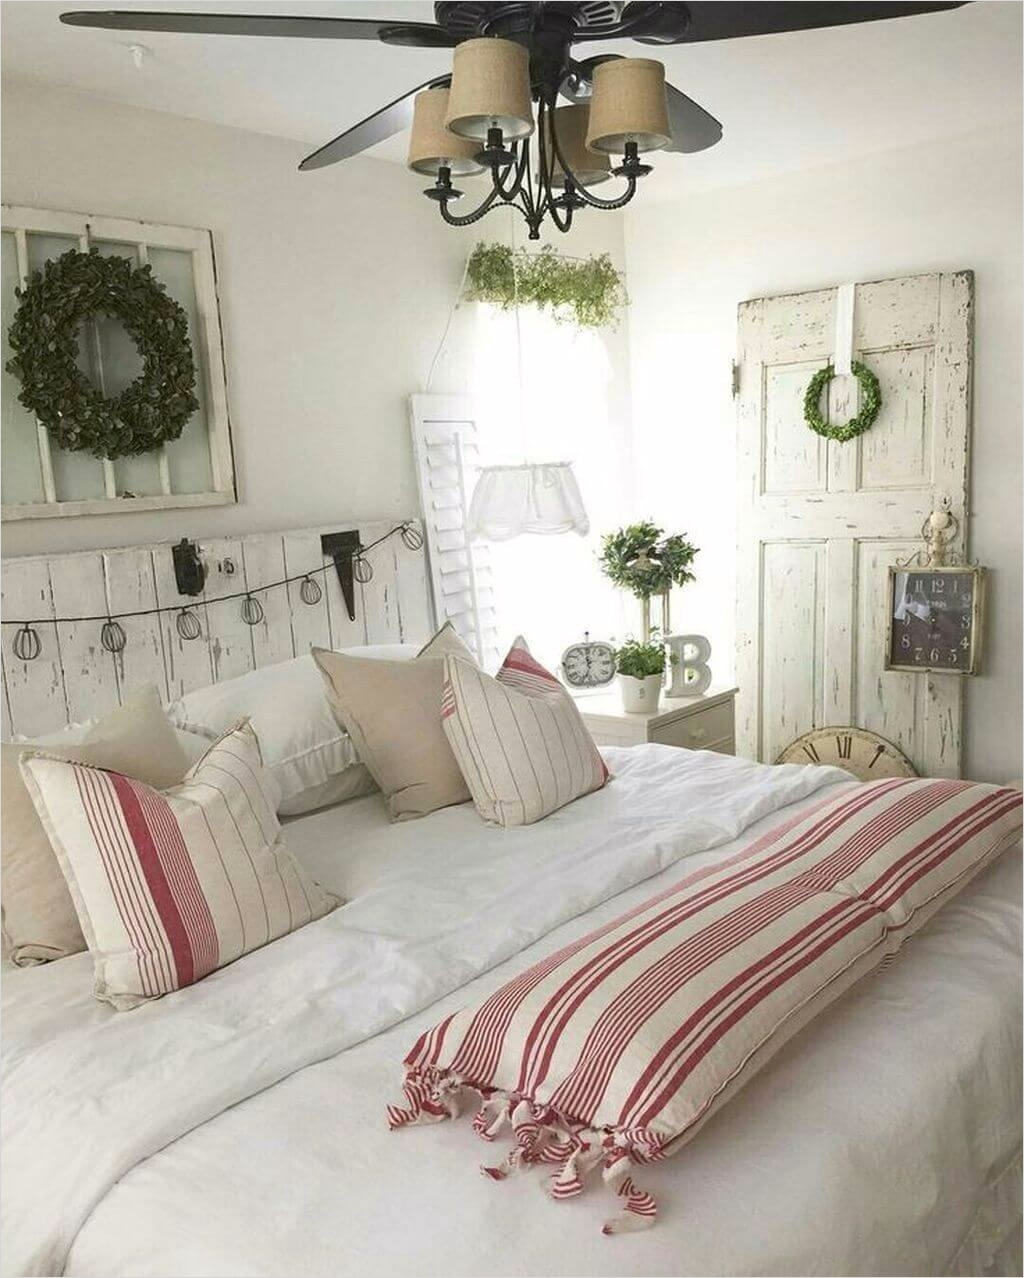 43 Stunning Country Farmhouse Bedroom Ideas 29 30 Best French Country Bedroom Decor and Design Ideas for 2018 7